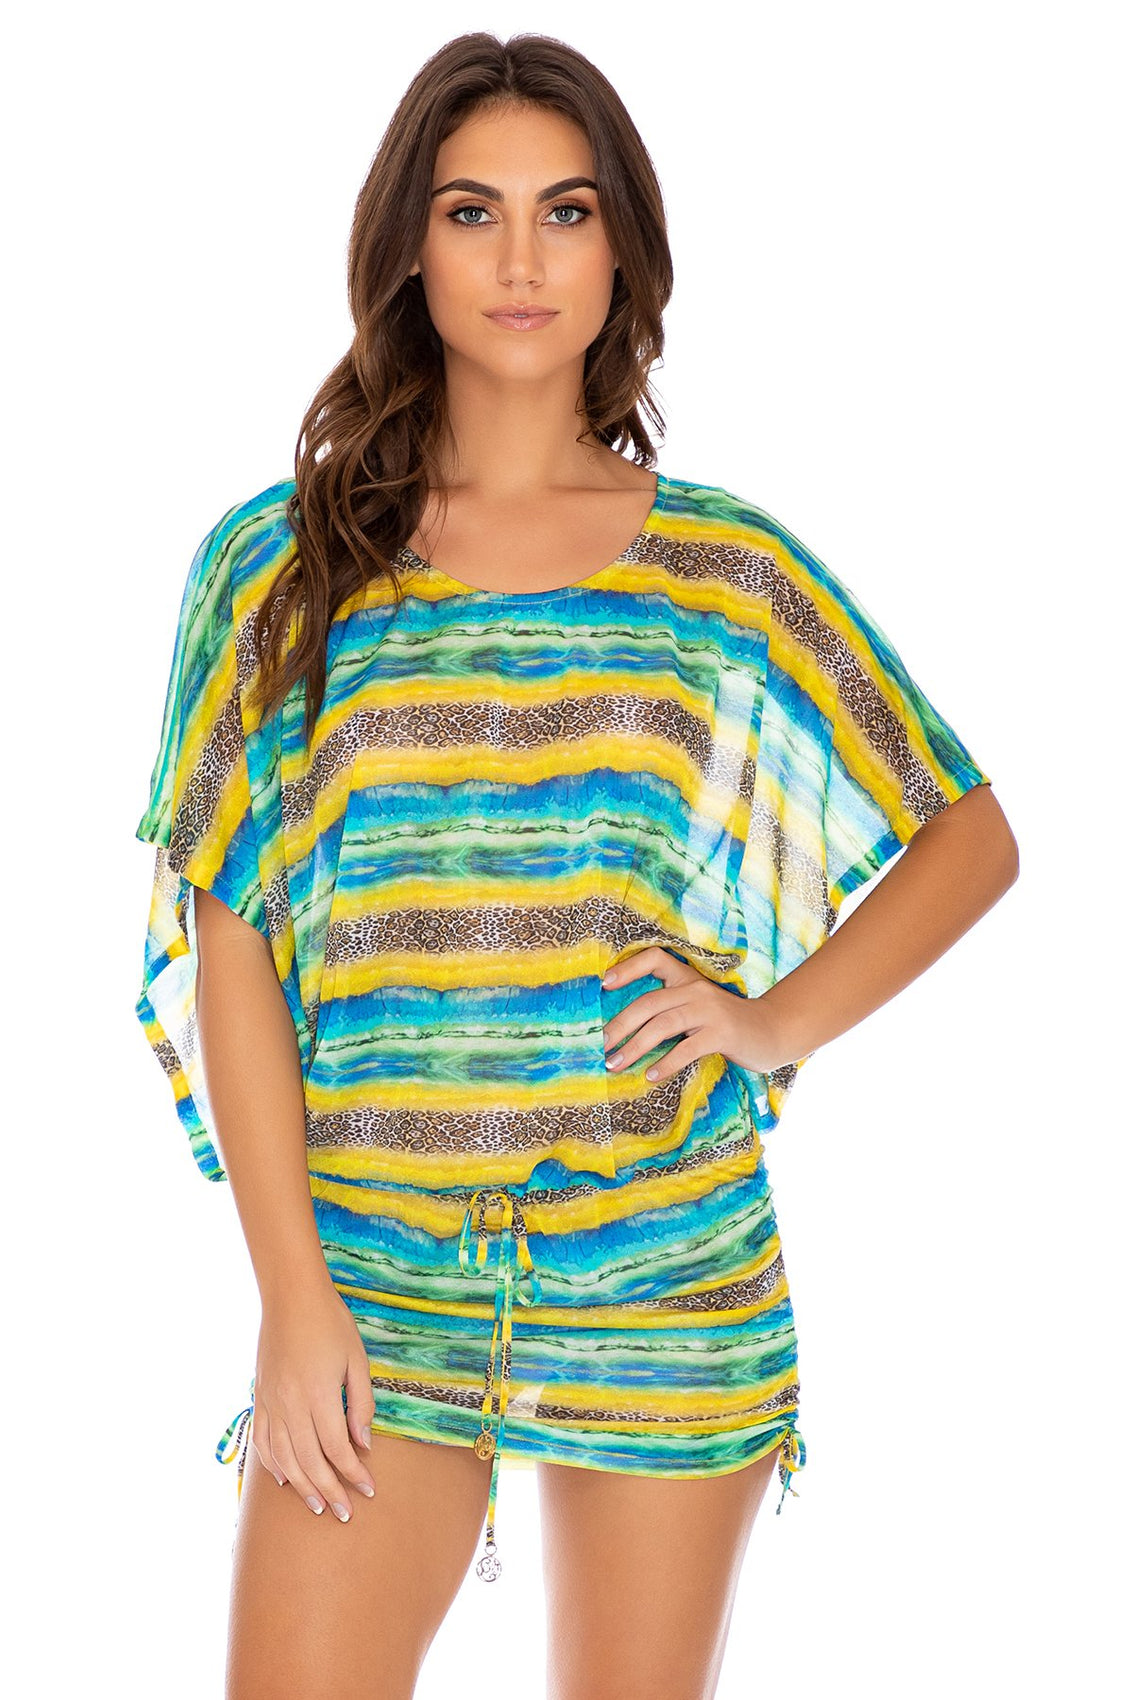 OLAS INFINITAS - South Beach Dress • Multicolor